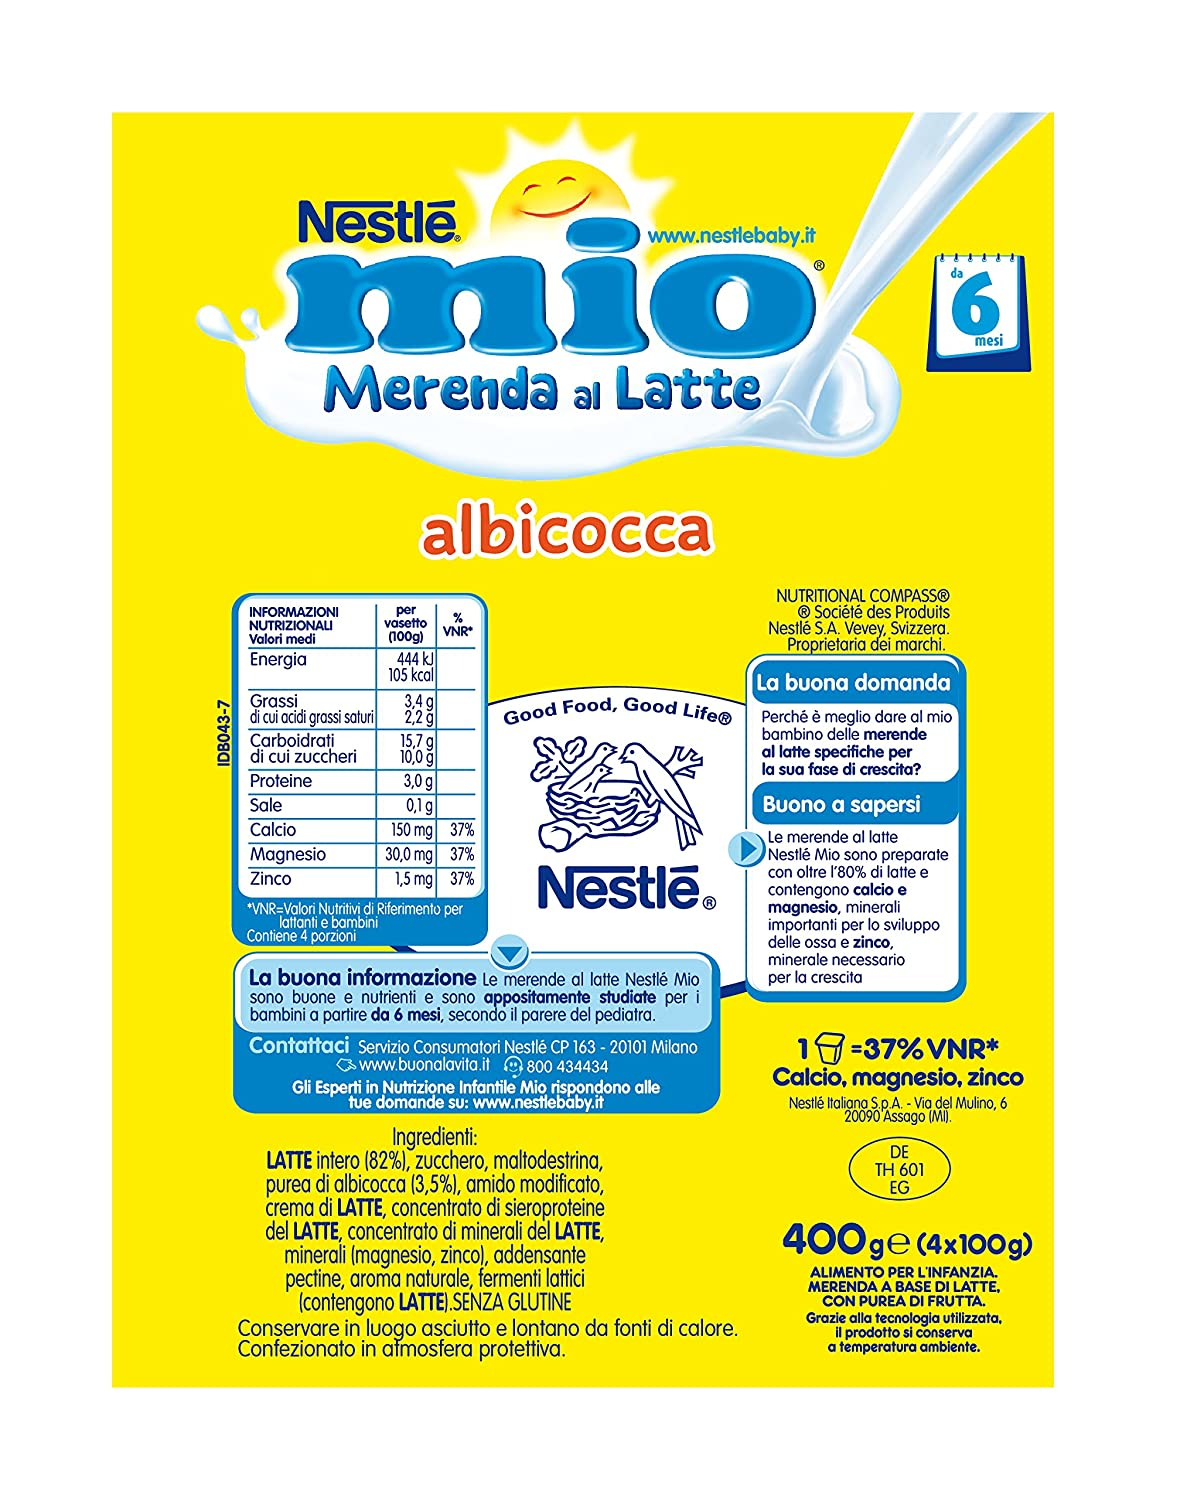 Amazon.com: Nestlé My Merenda Milk Apricot 4x100g: Health & Personal Care